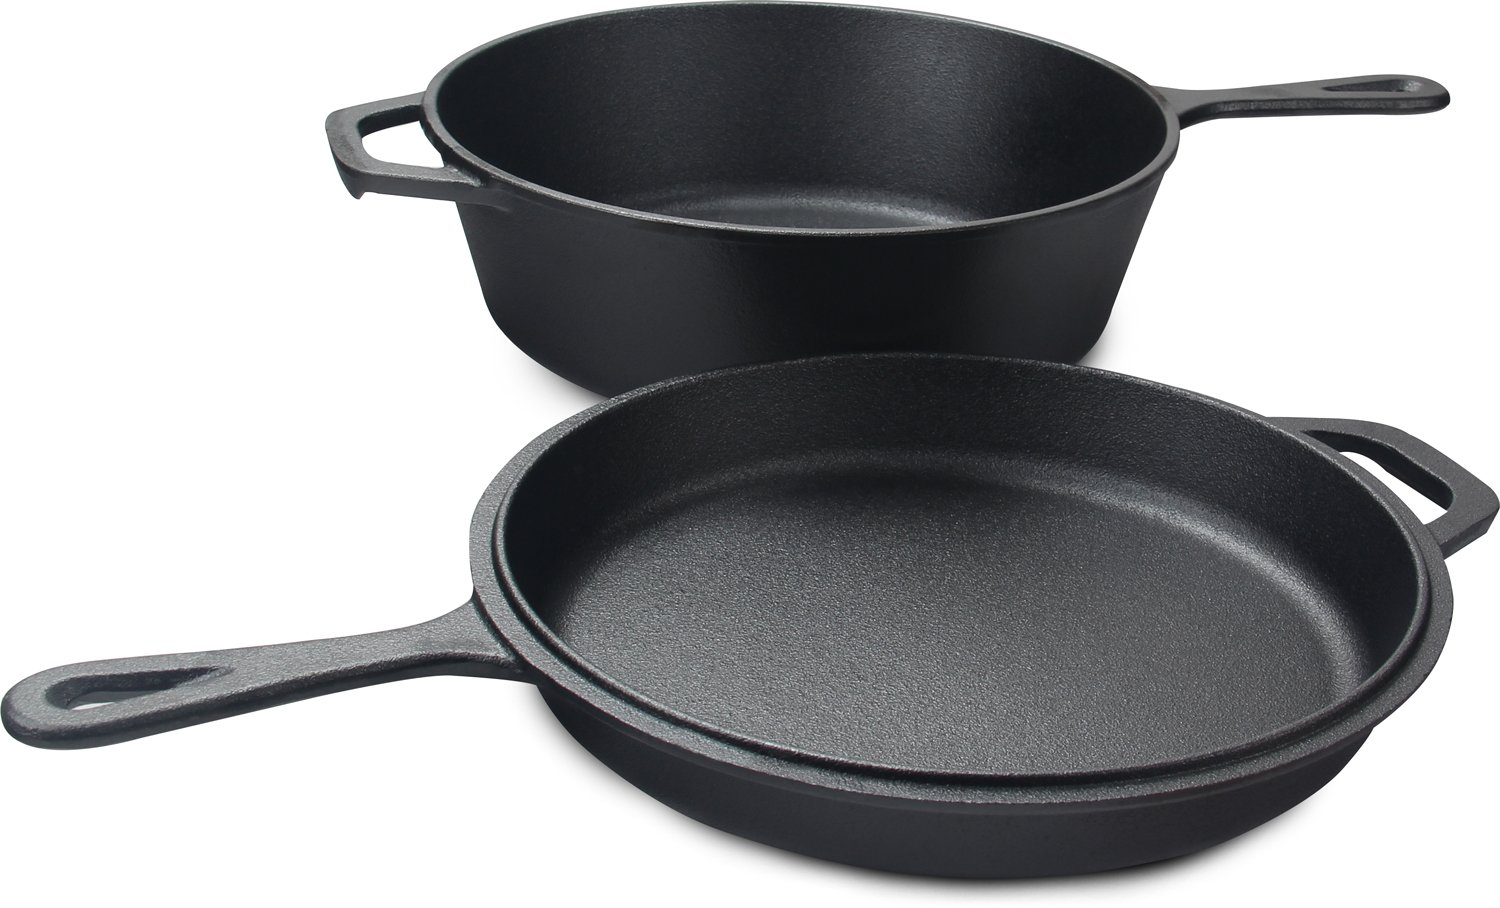 Utopia Kitchen Pre-Seasoned Cast Iron 2-In-1 Combo Cooker with 3.2 Quart Dutch Oven and 10.25 inch Skillet by Utopia Kitchen